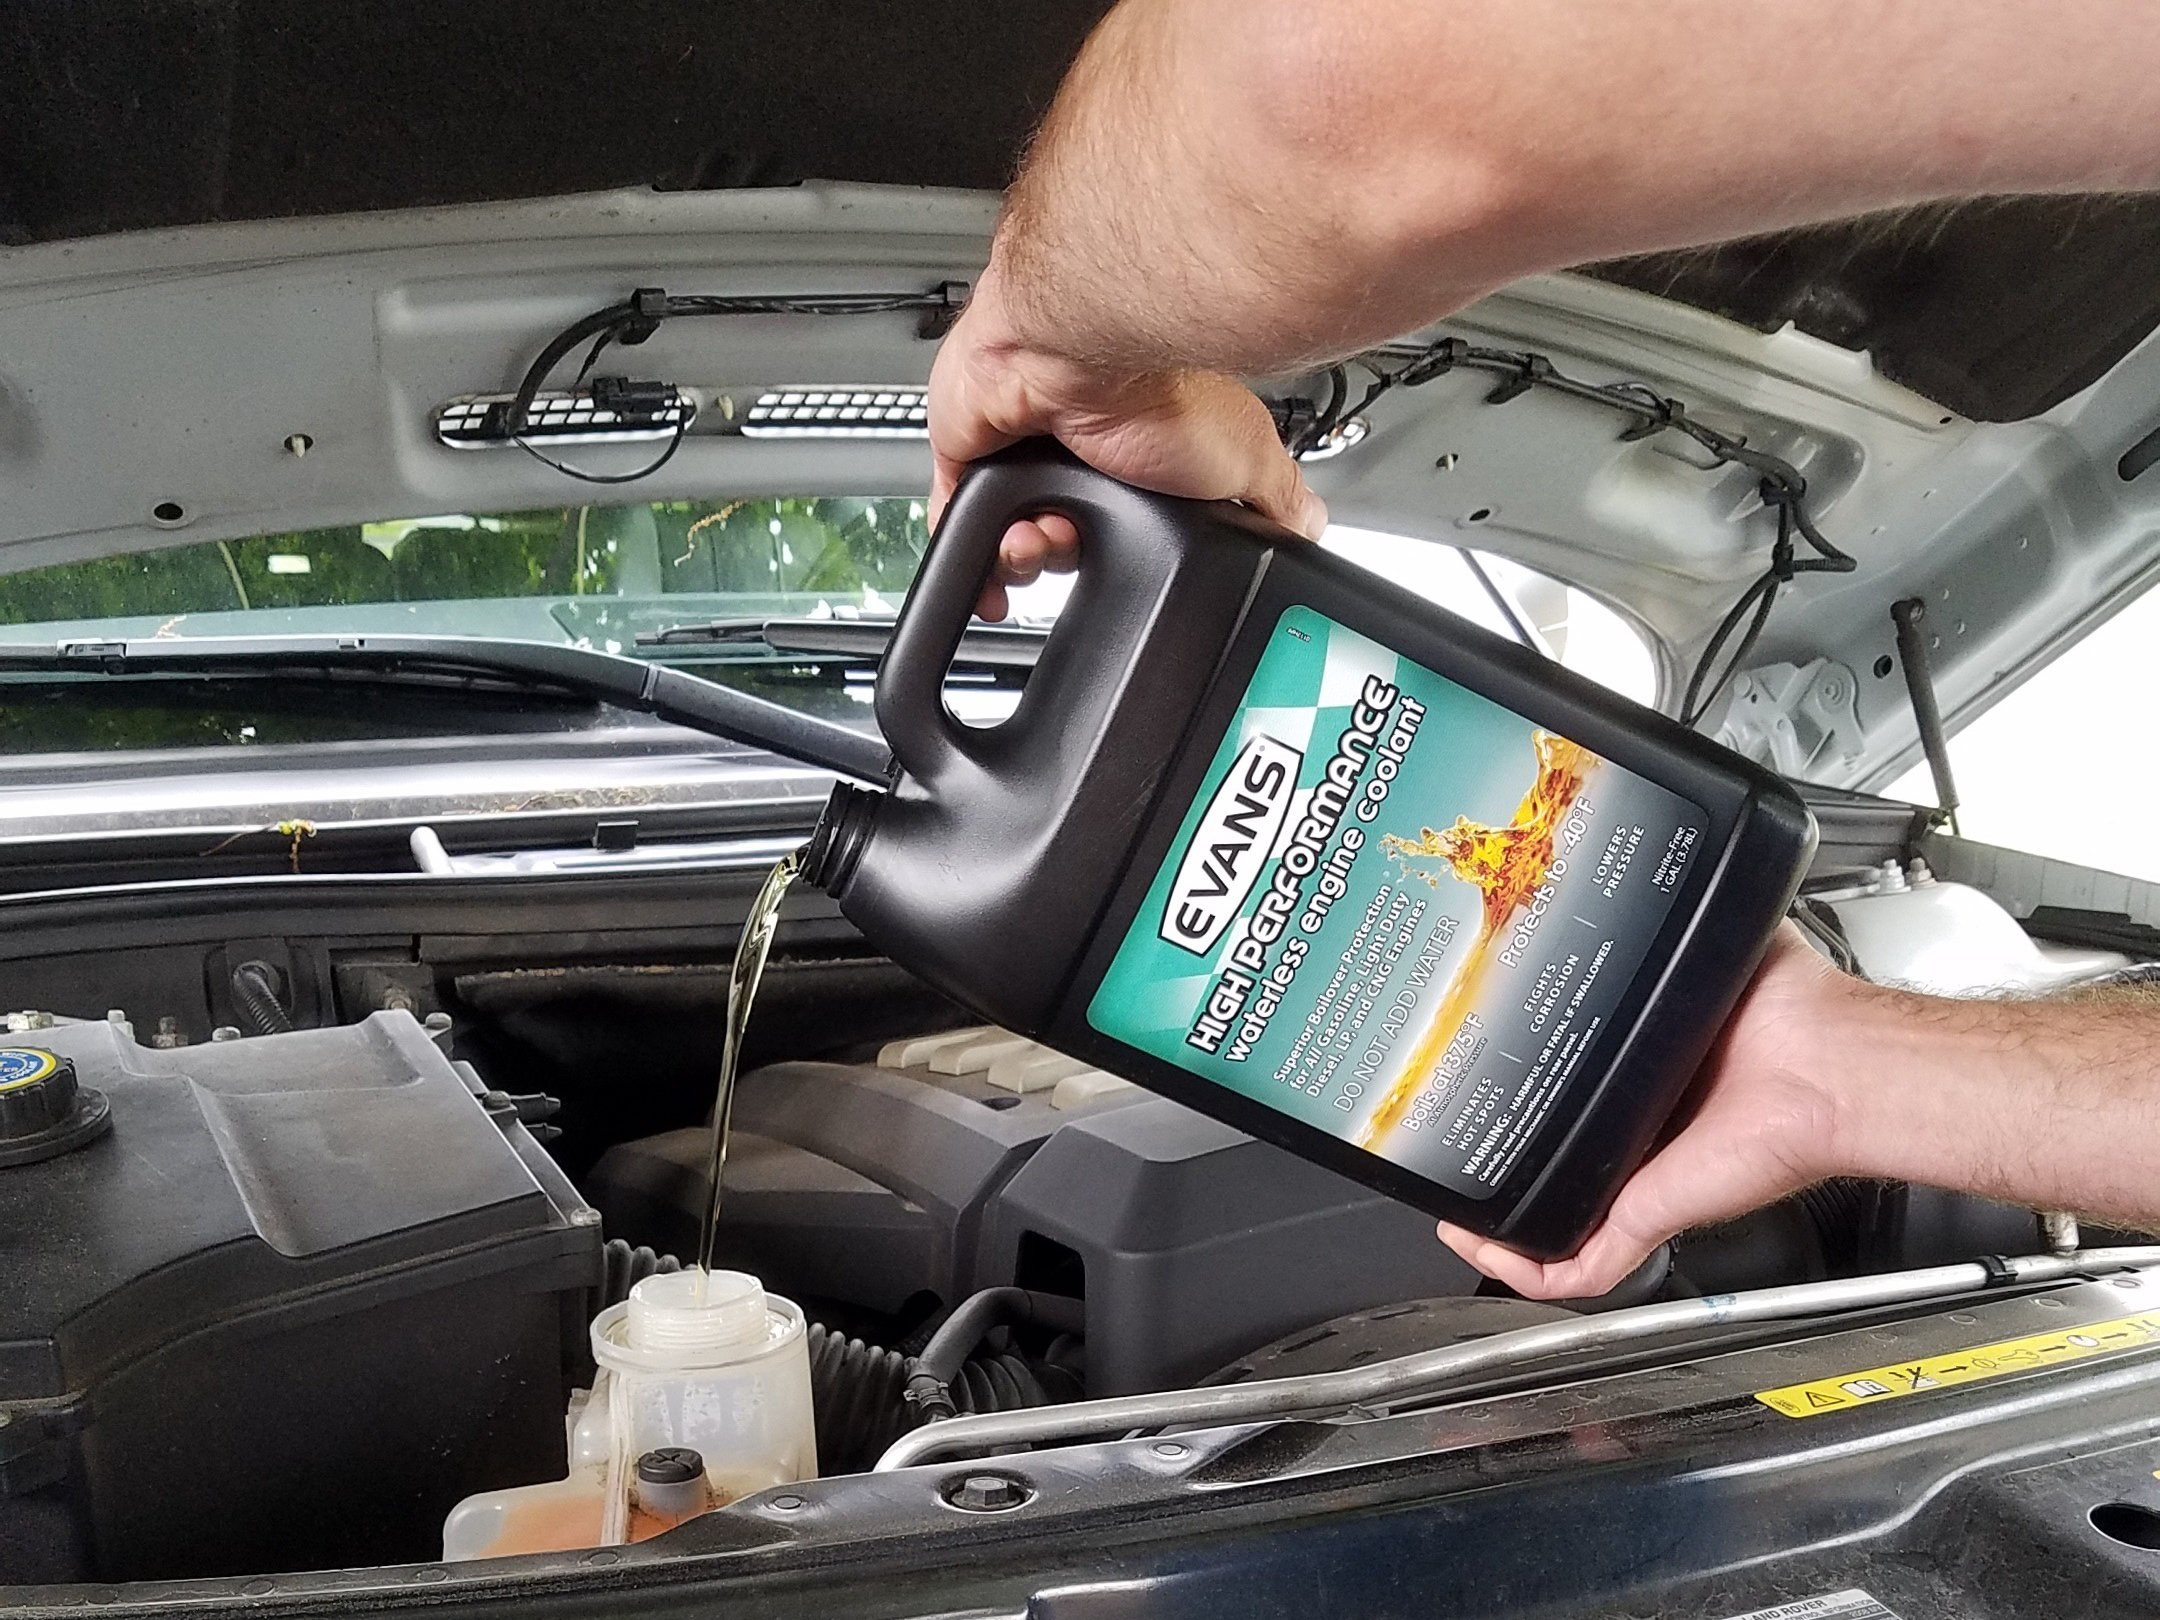 Chill Out How Waterless Coolant Keeps Your Ride Running Cool Engine Damage The Automotive Hobby Is Best Enjoyed During Warmer Months Of Year When Weather Amazing And More Time Can Be Spent Outside